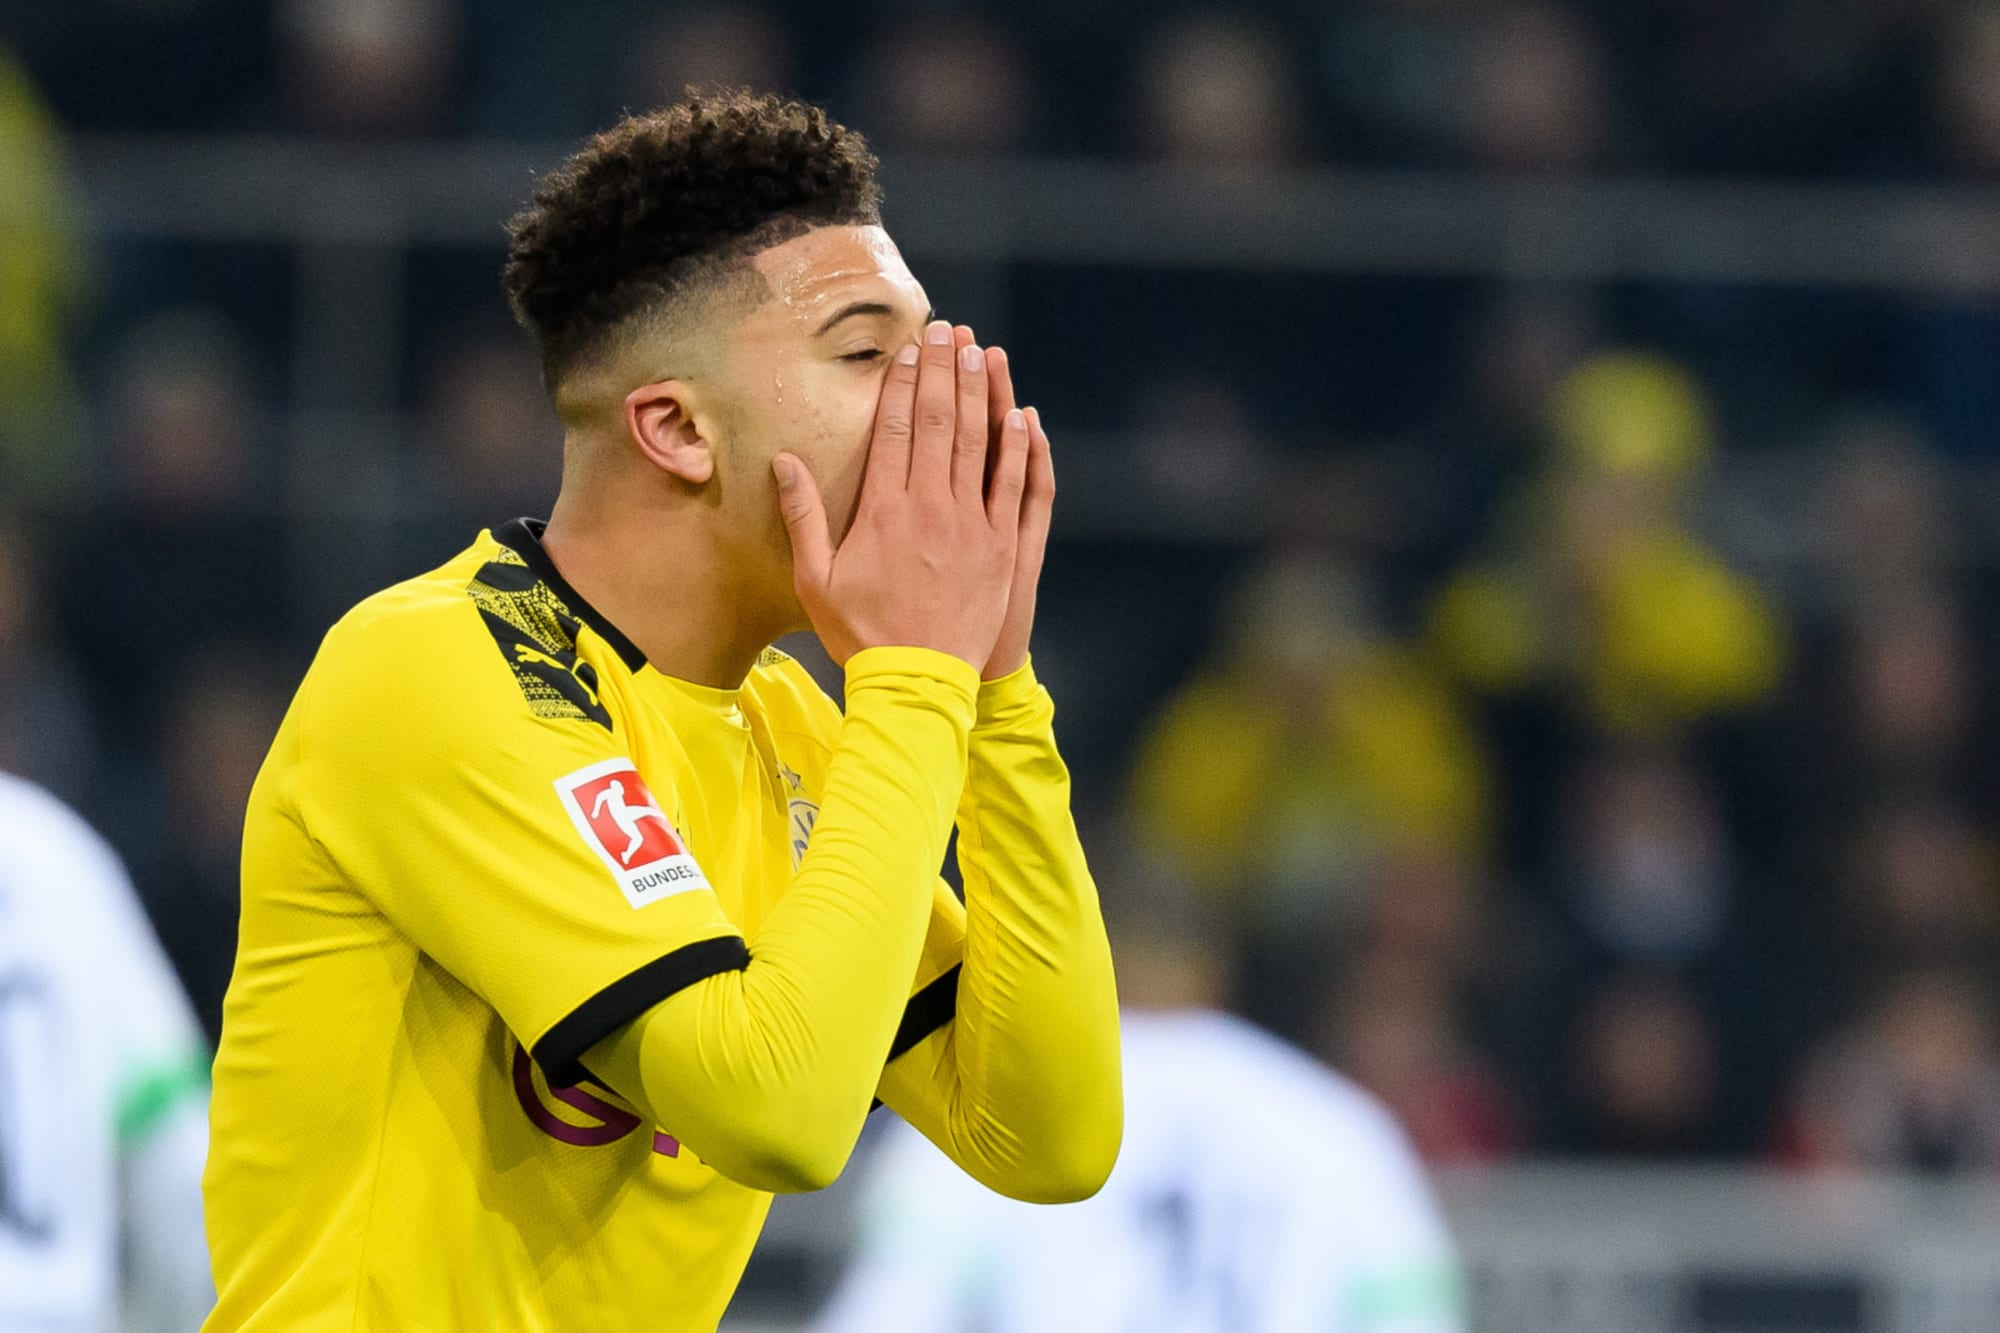 Manchester United determined to sign Jadon Sancho on one condition